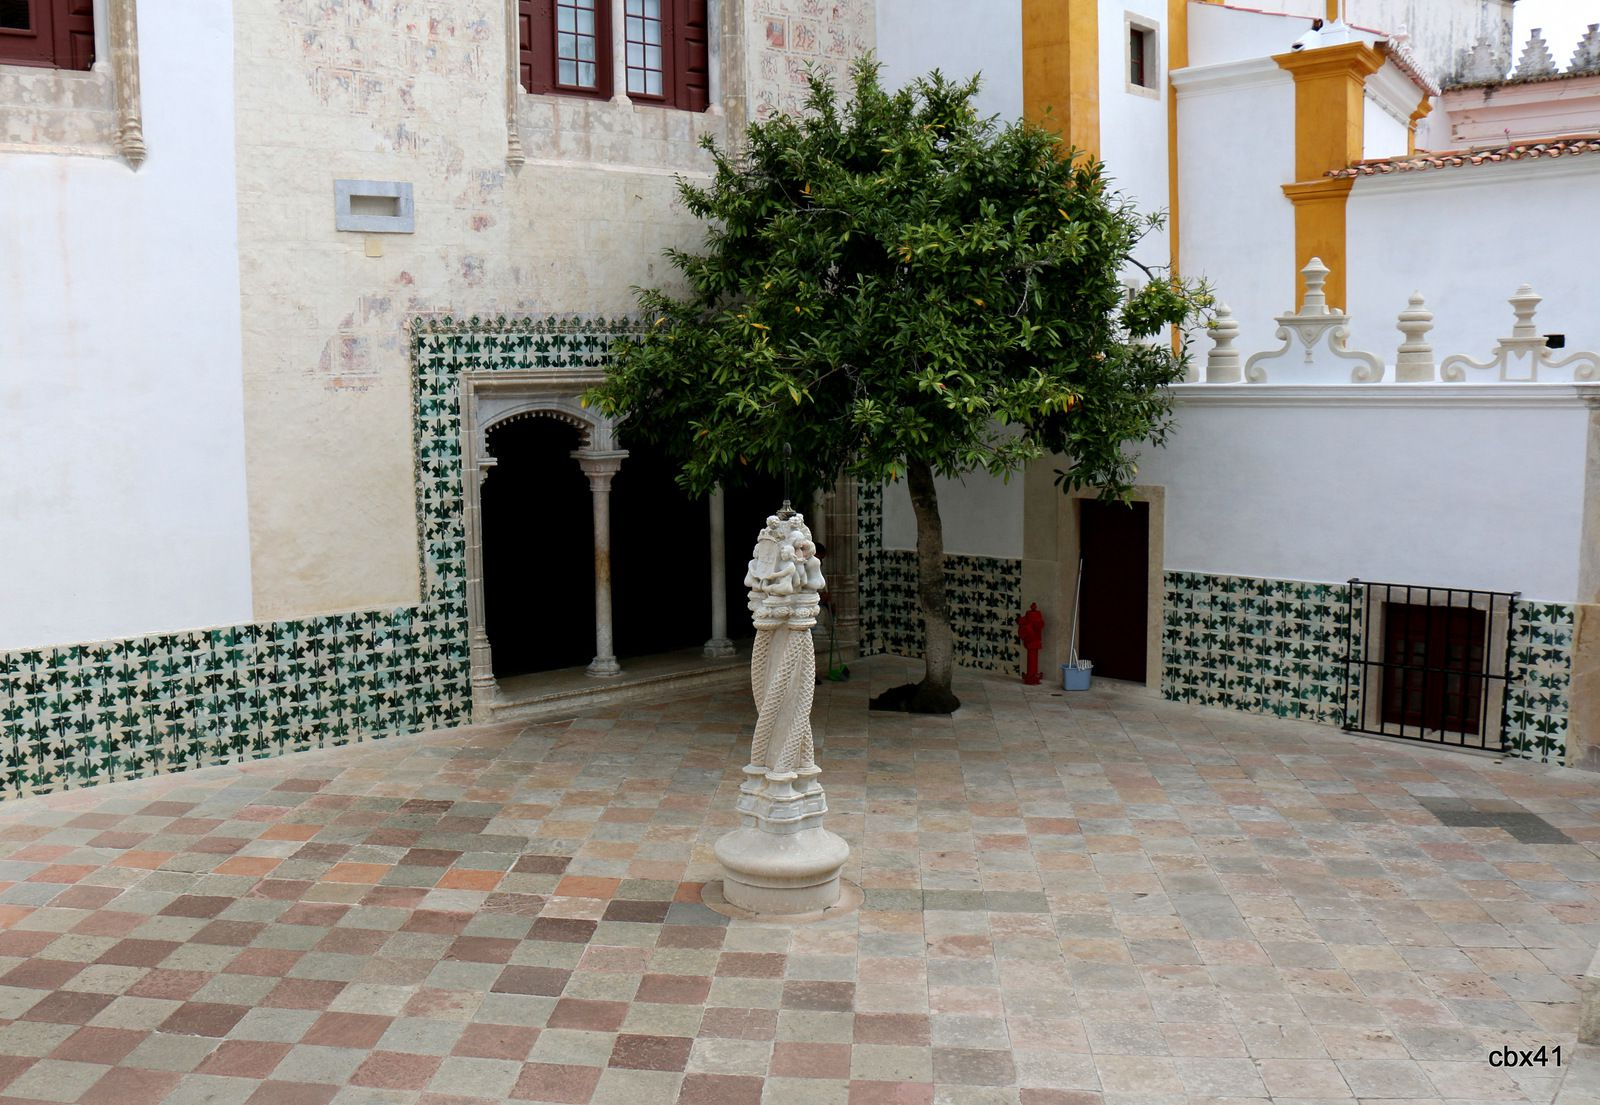 Patio central du Palais National de Sintra (Portugal)